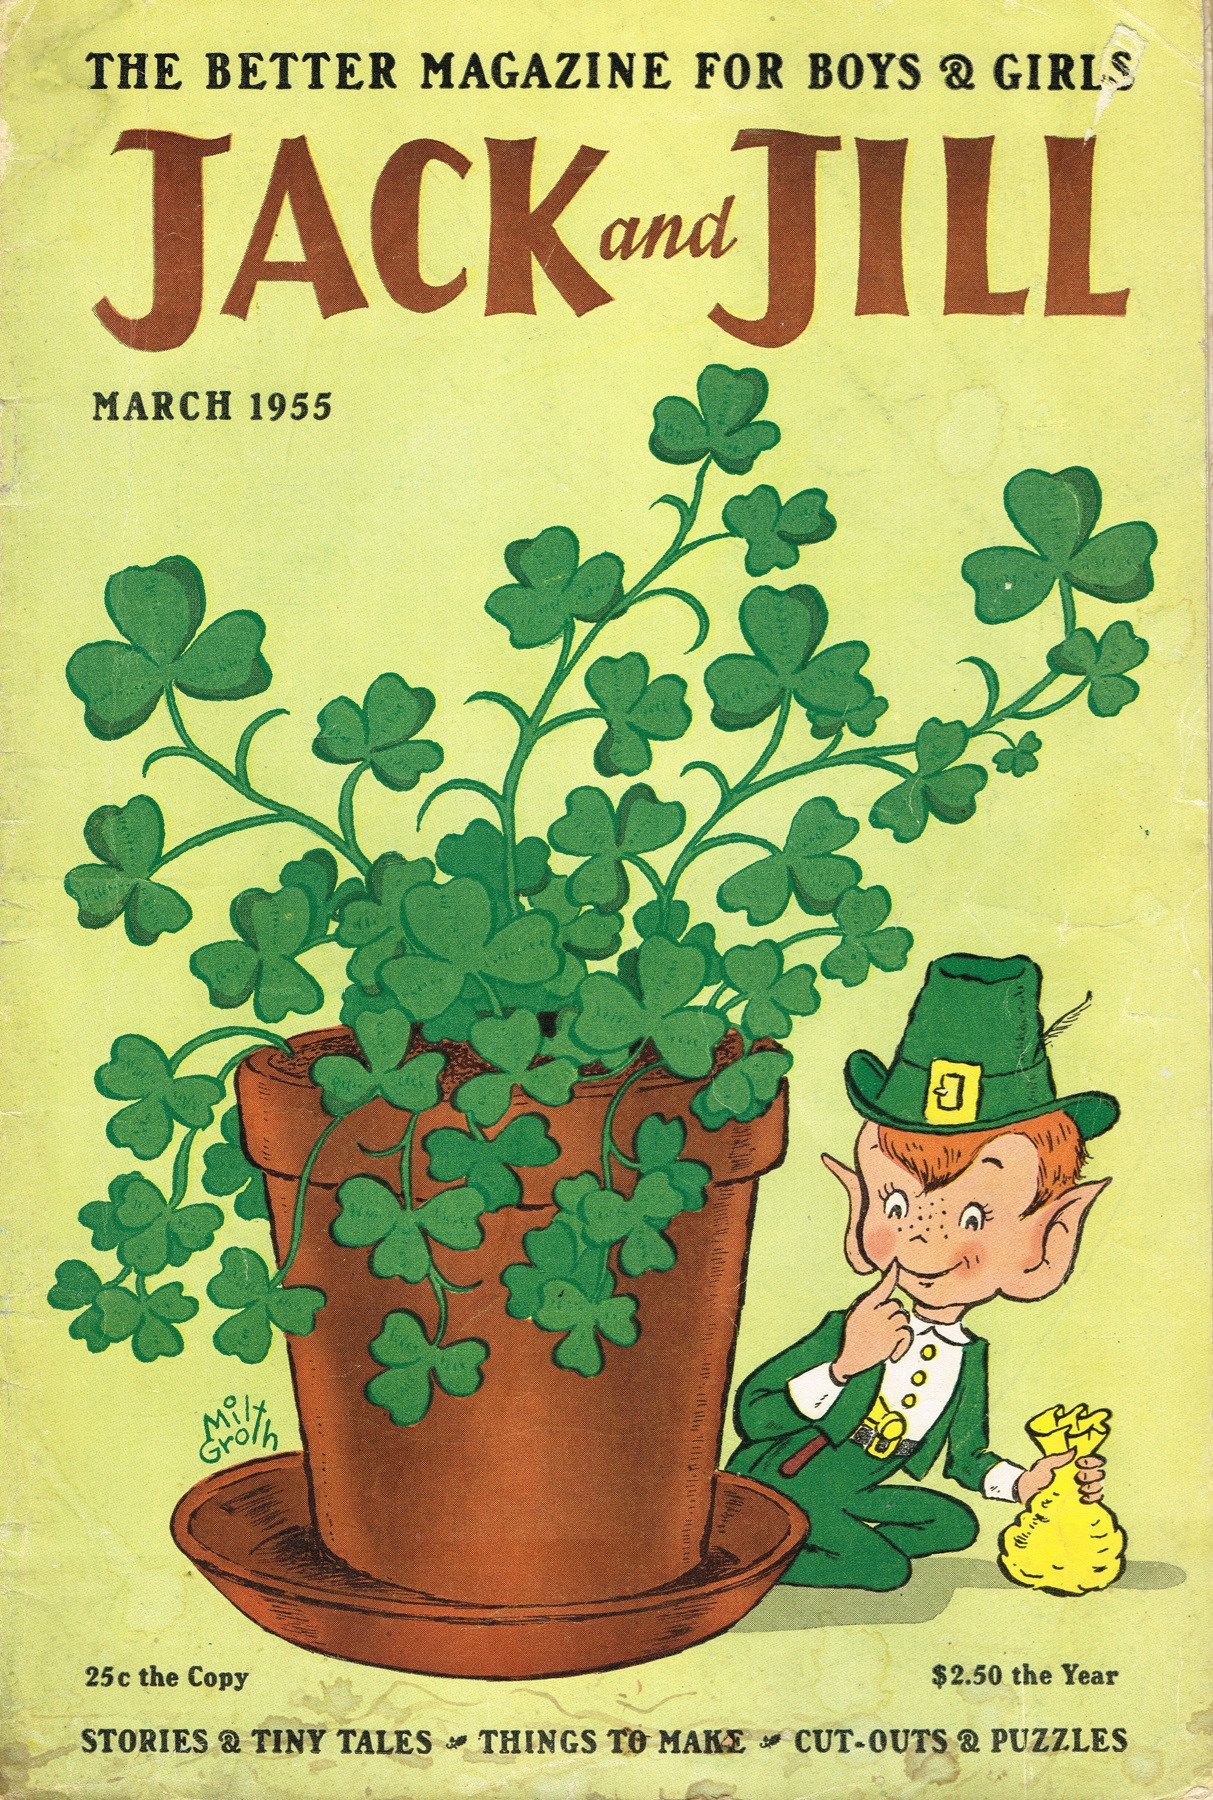 Jack and Jill - published March 1955